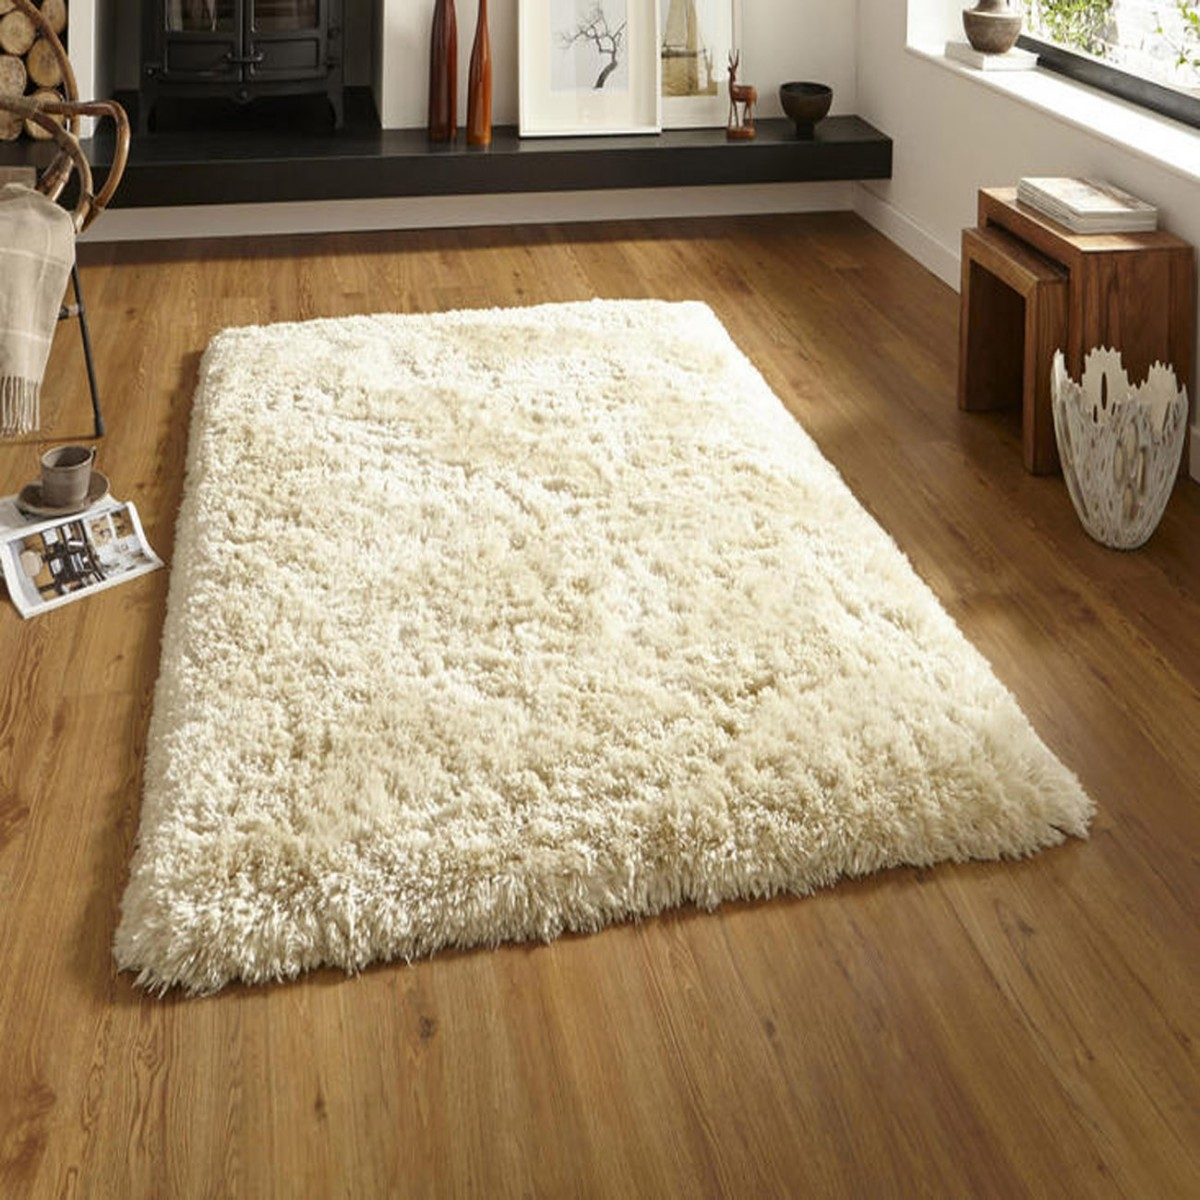 Thick Area Rugs Home Decors Collection Intended For Thick Rugs (Image 8 of 15)